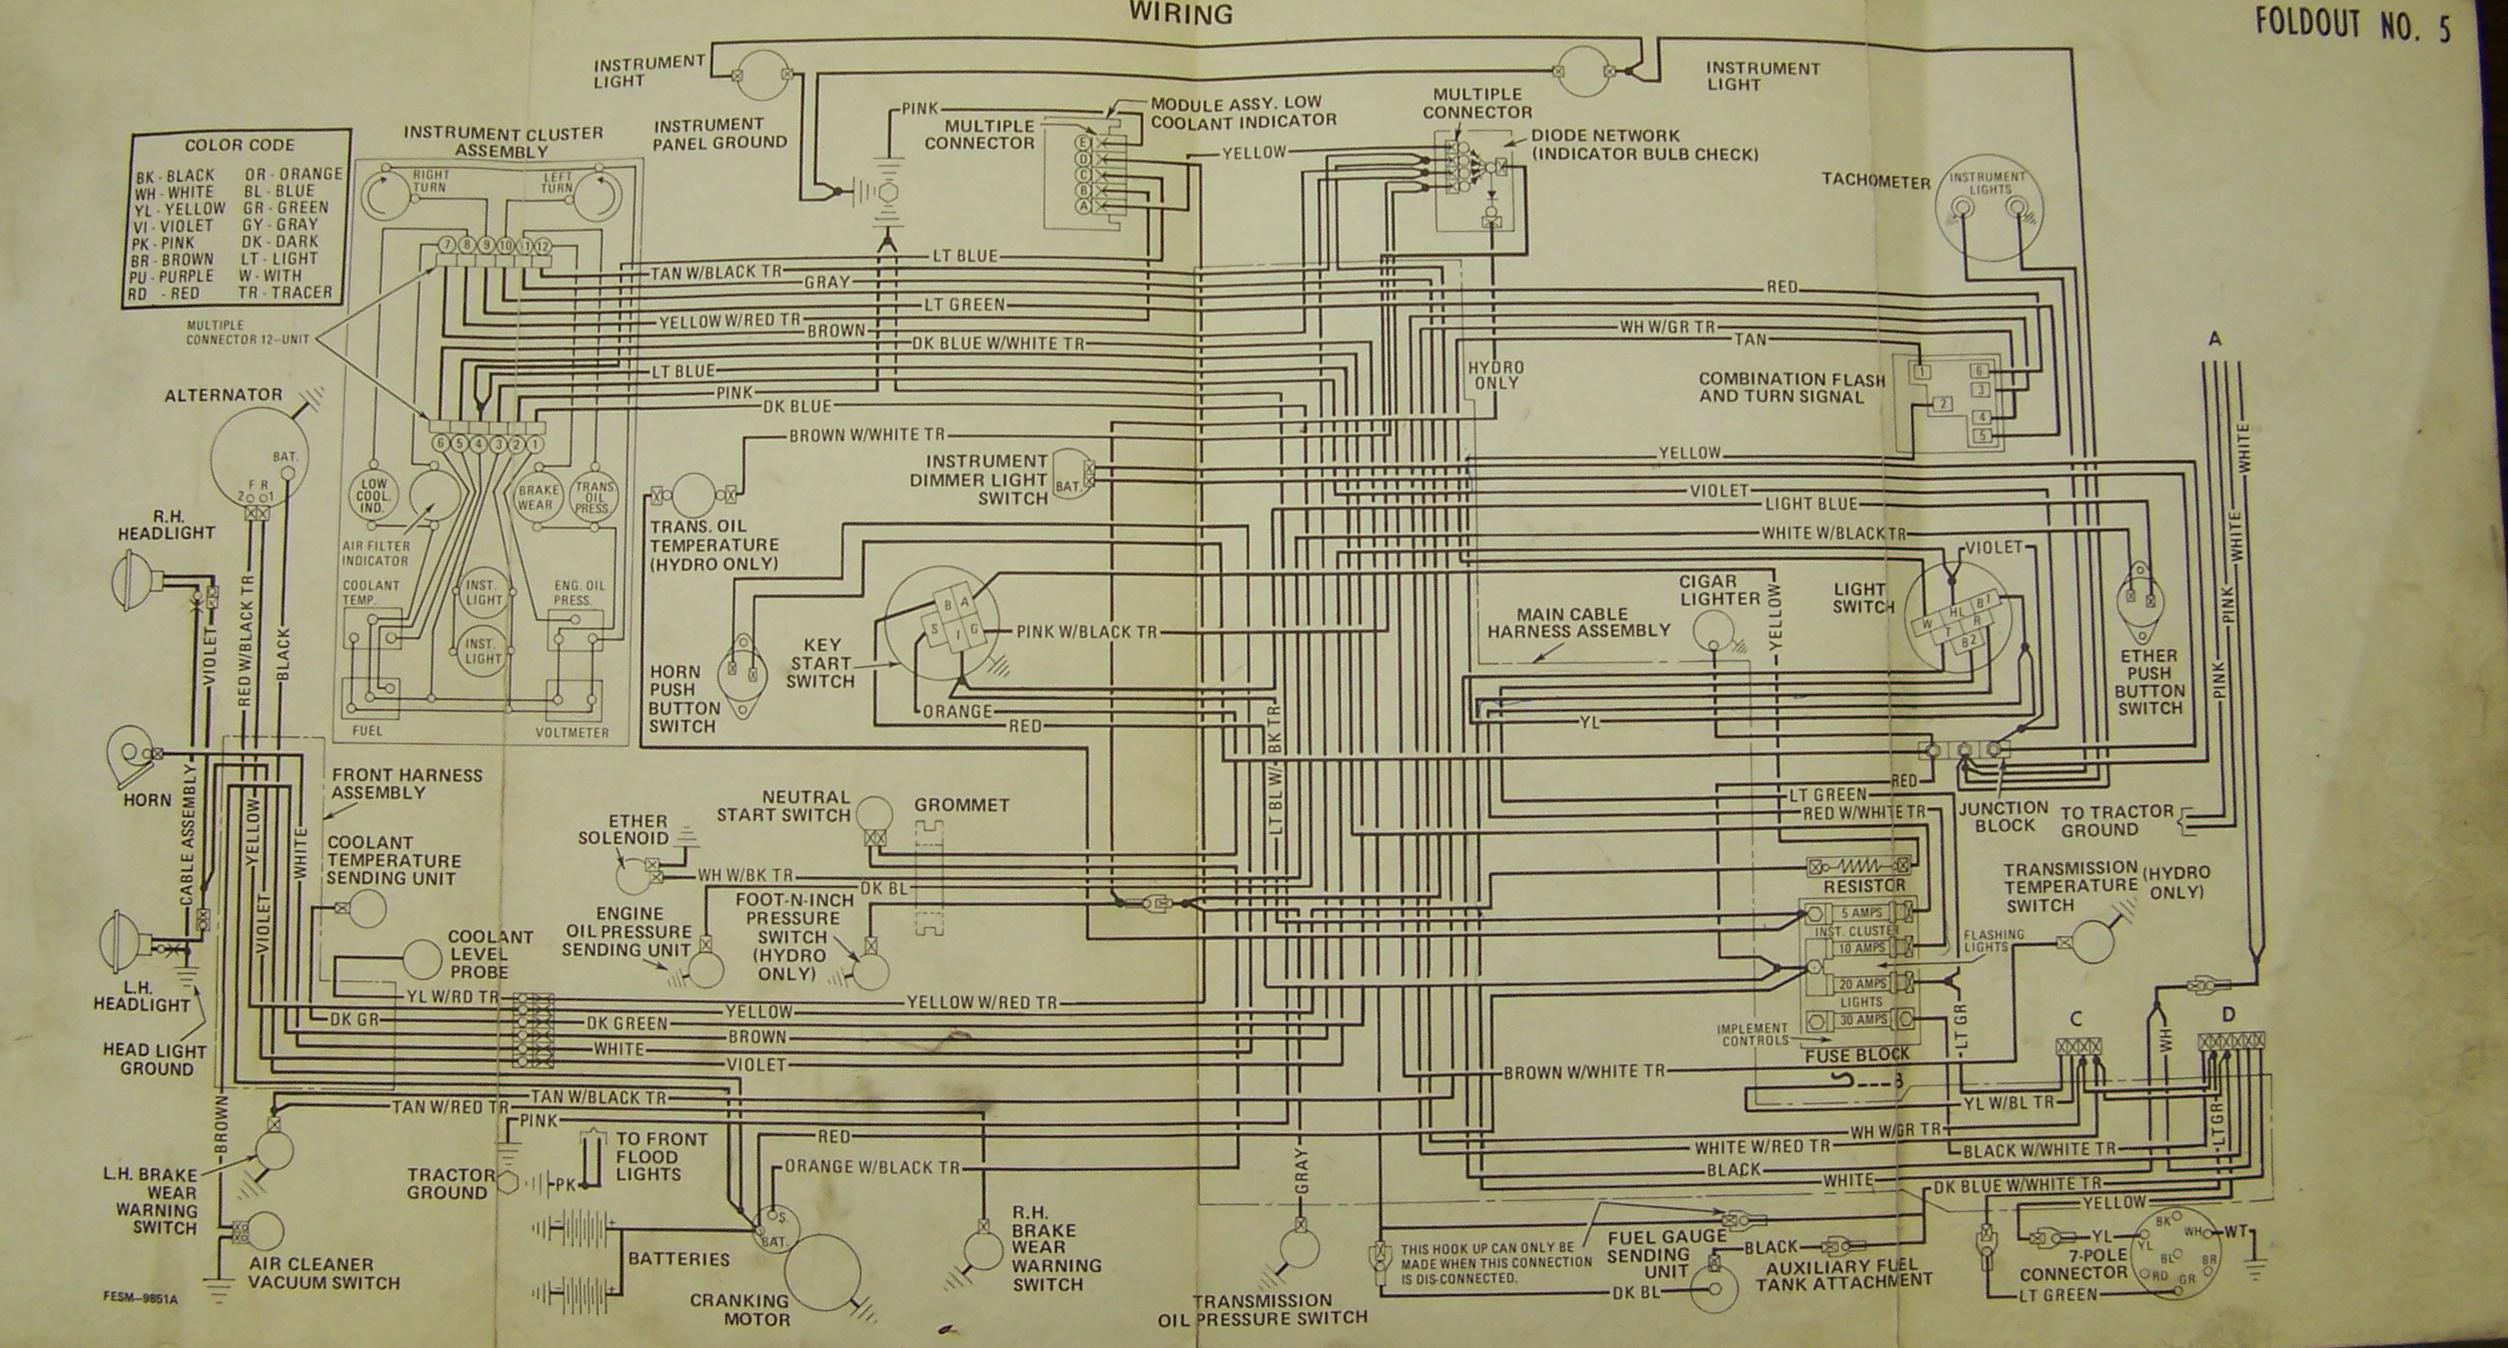 carter gruenewald co inc ih farmall tractor electrical wiring rh cngco com Farmall Wiring Harness Diagram Farmall International Tractor Wiring Diagram